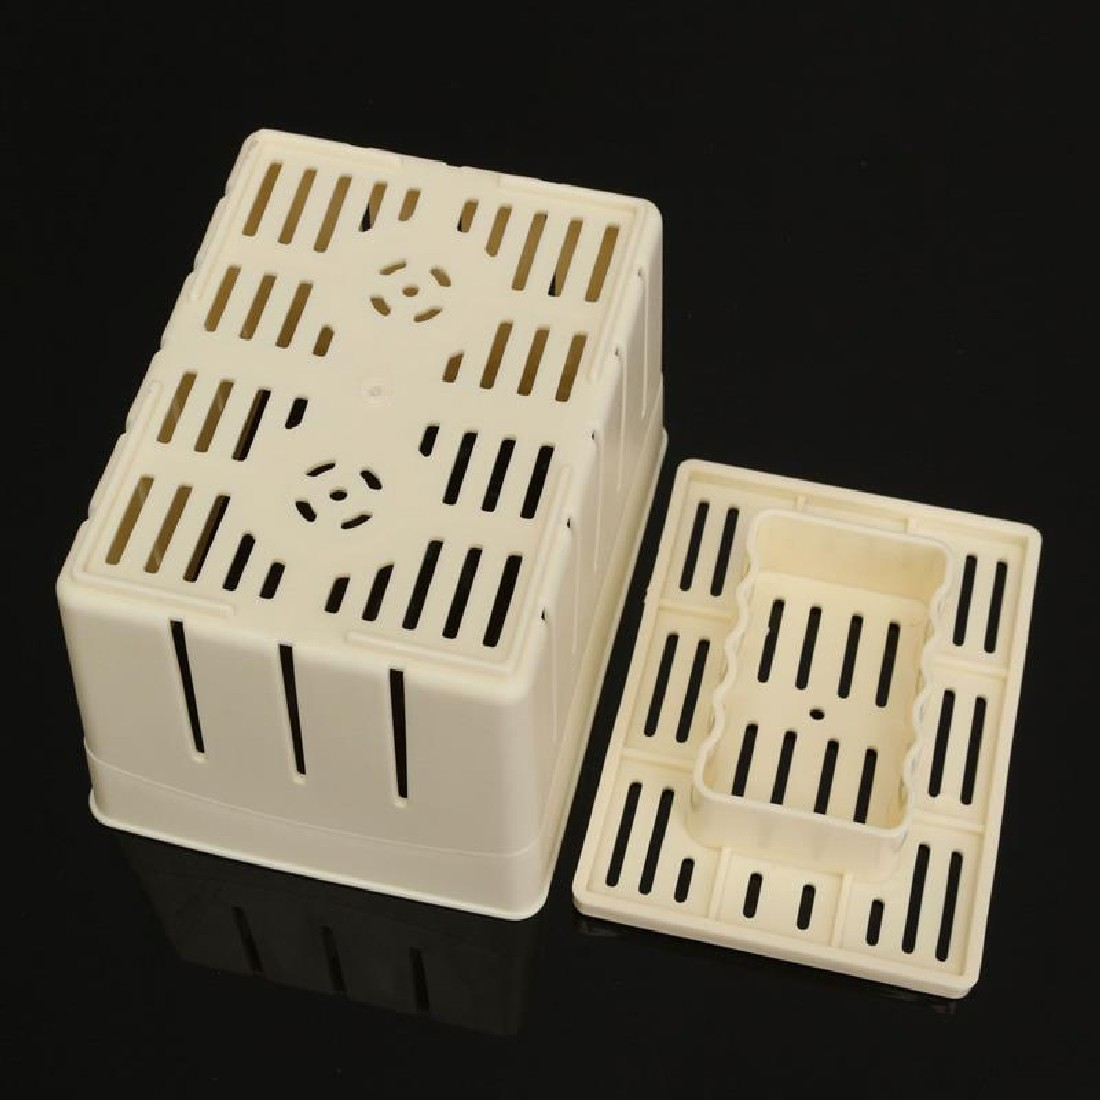 Hot Sale DIY Homemade Tofu Press-Maker Mold Box Plastic Soybean Curd Making Machine Kitchen Cooking Tools